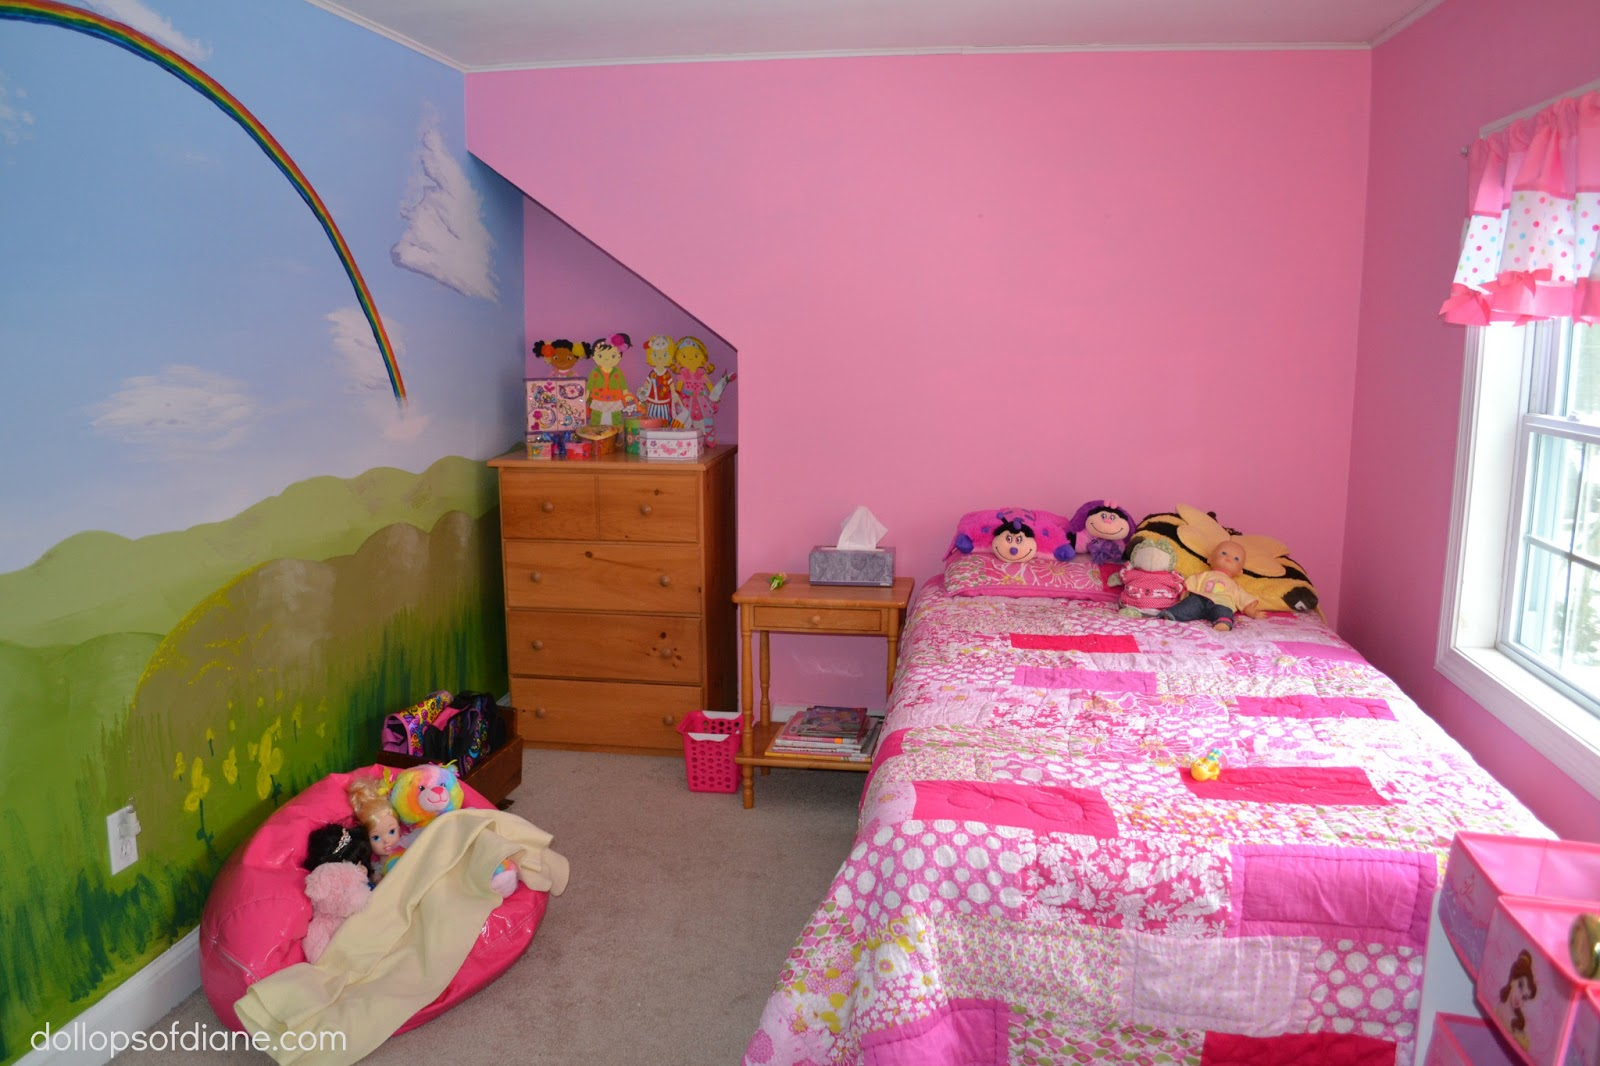 Dollops of diane the perfect room for a five year old girl for 6 year girl bedroom ideas